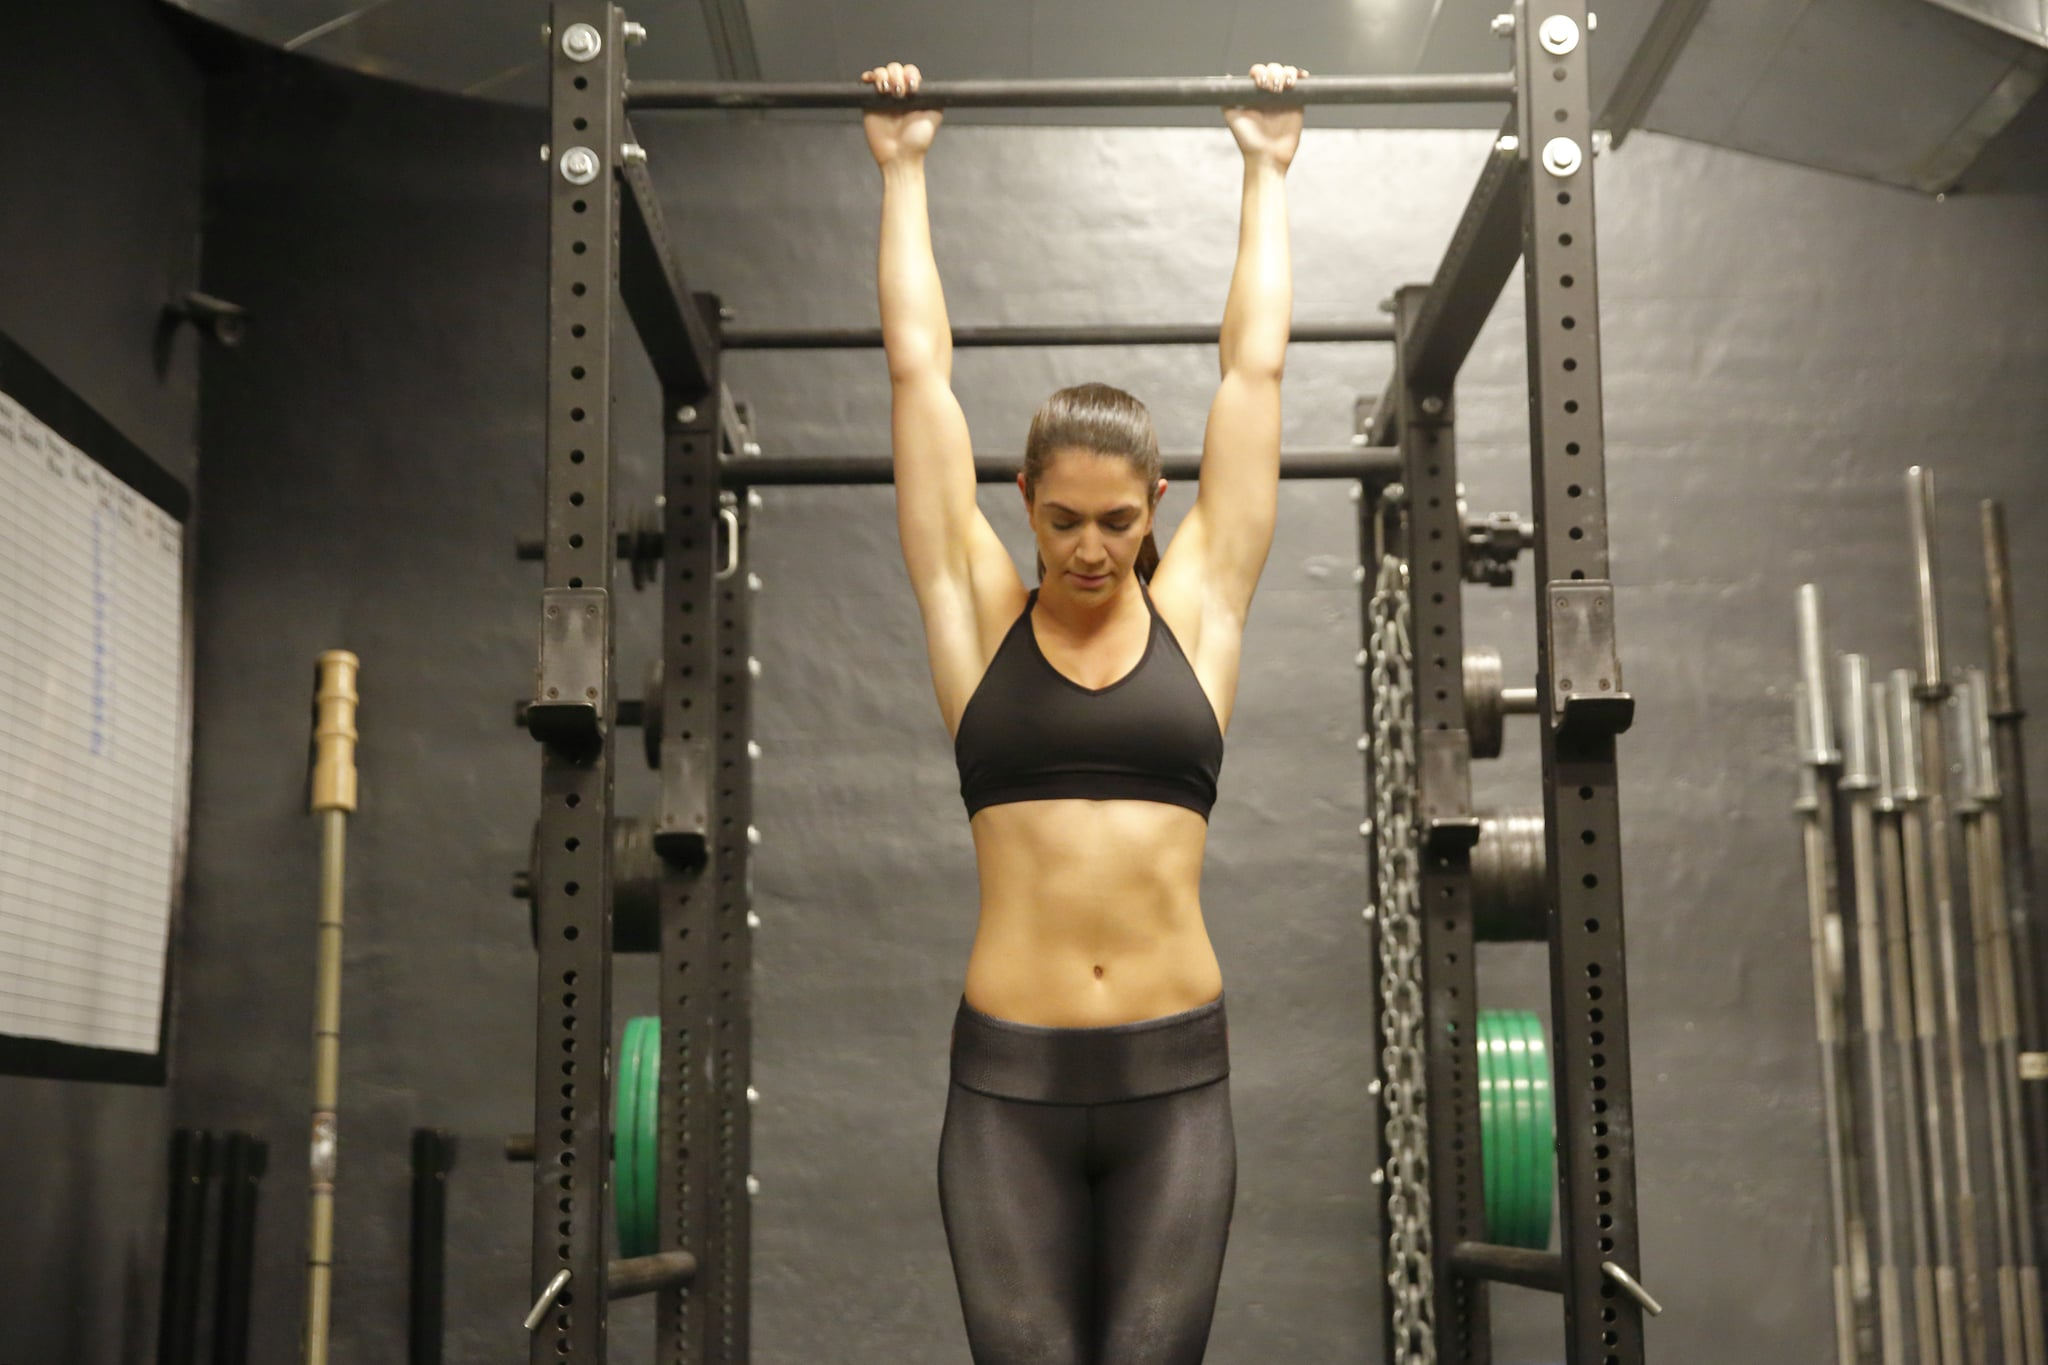 A fit, young Caucasian woman hangs from a pull up bar while doing pull ups.